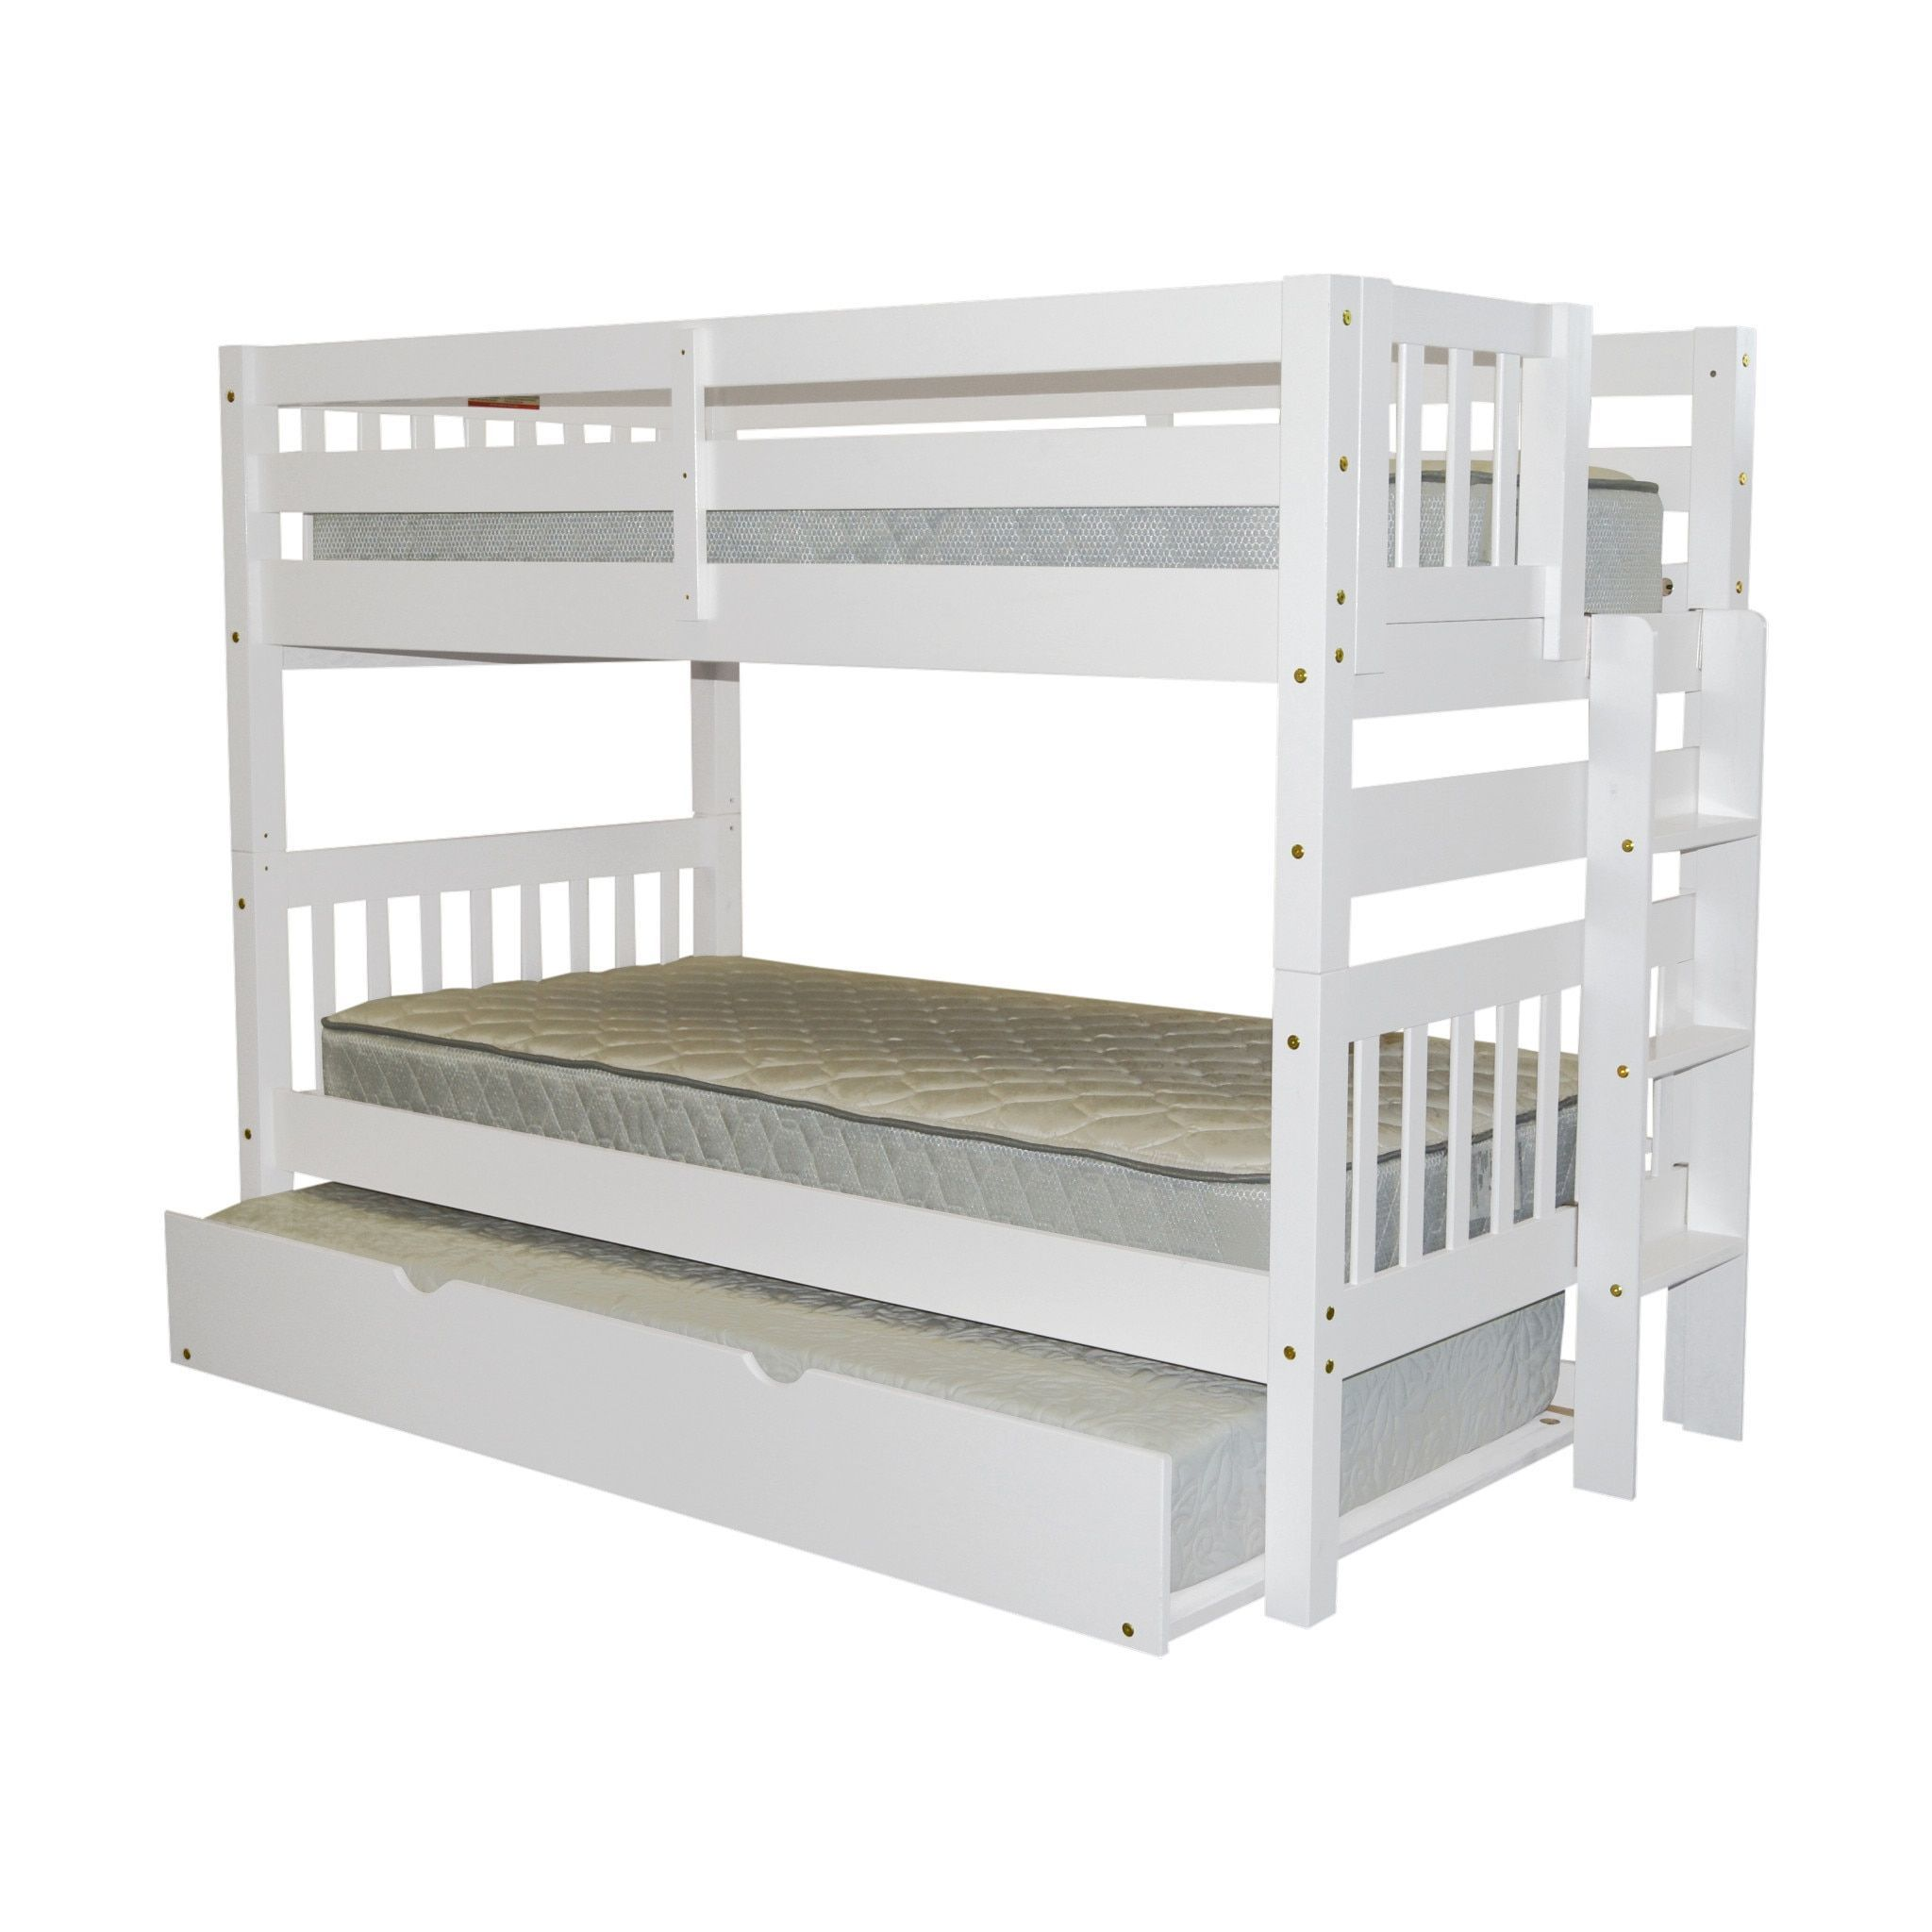 Boys' twin loft bed with storage steps  Bedz King White Wood TwinoverTwin Bunk Bed with End Ladder and